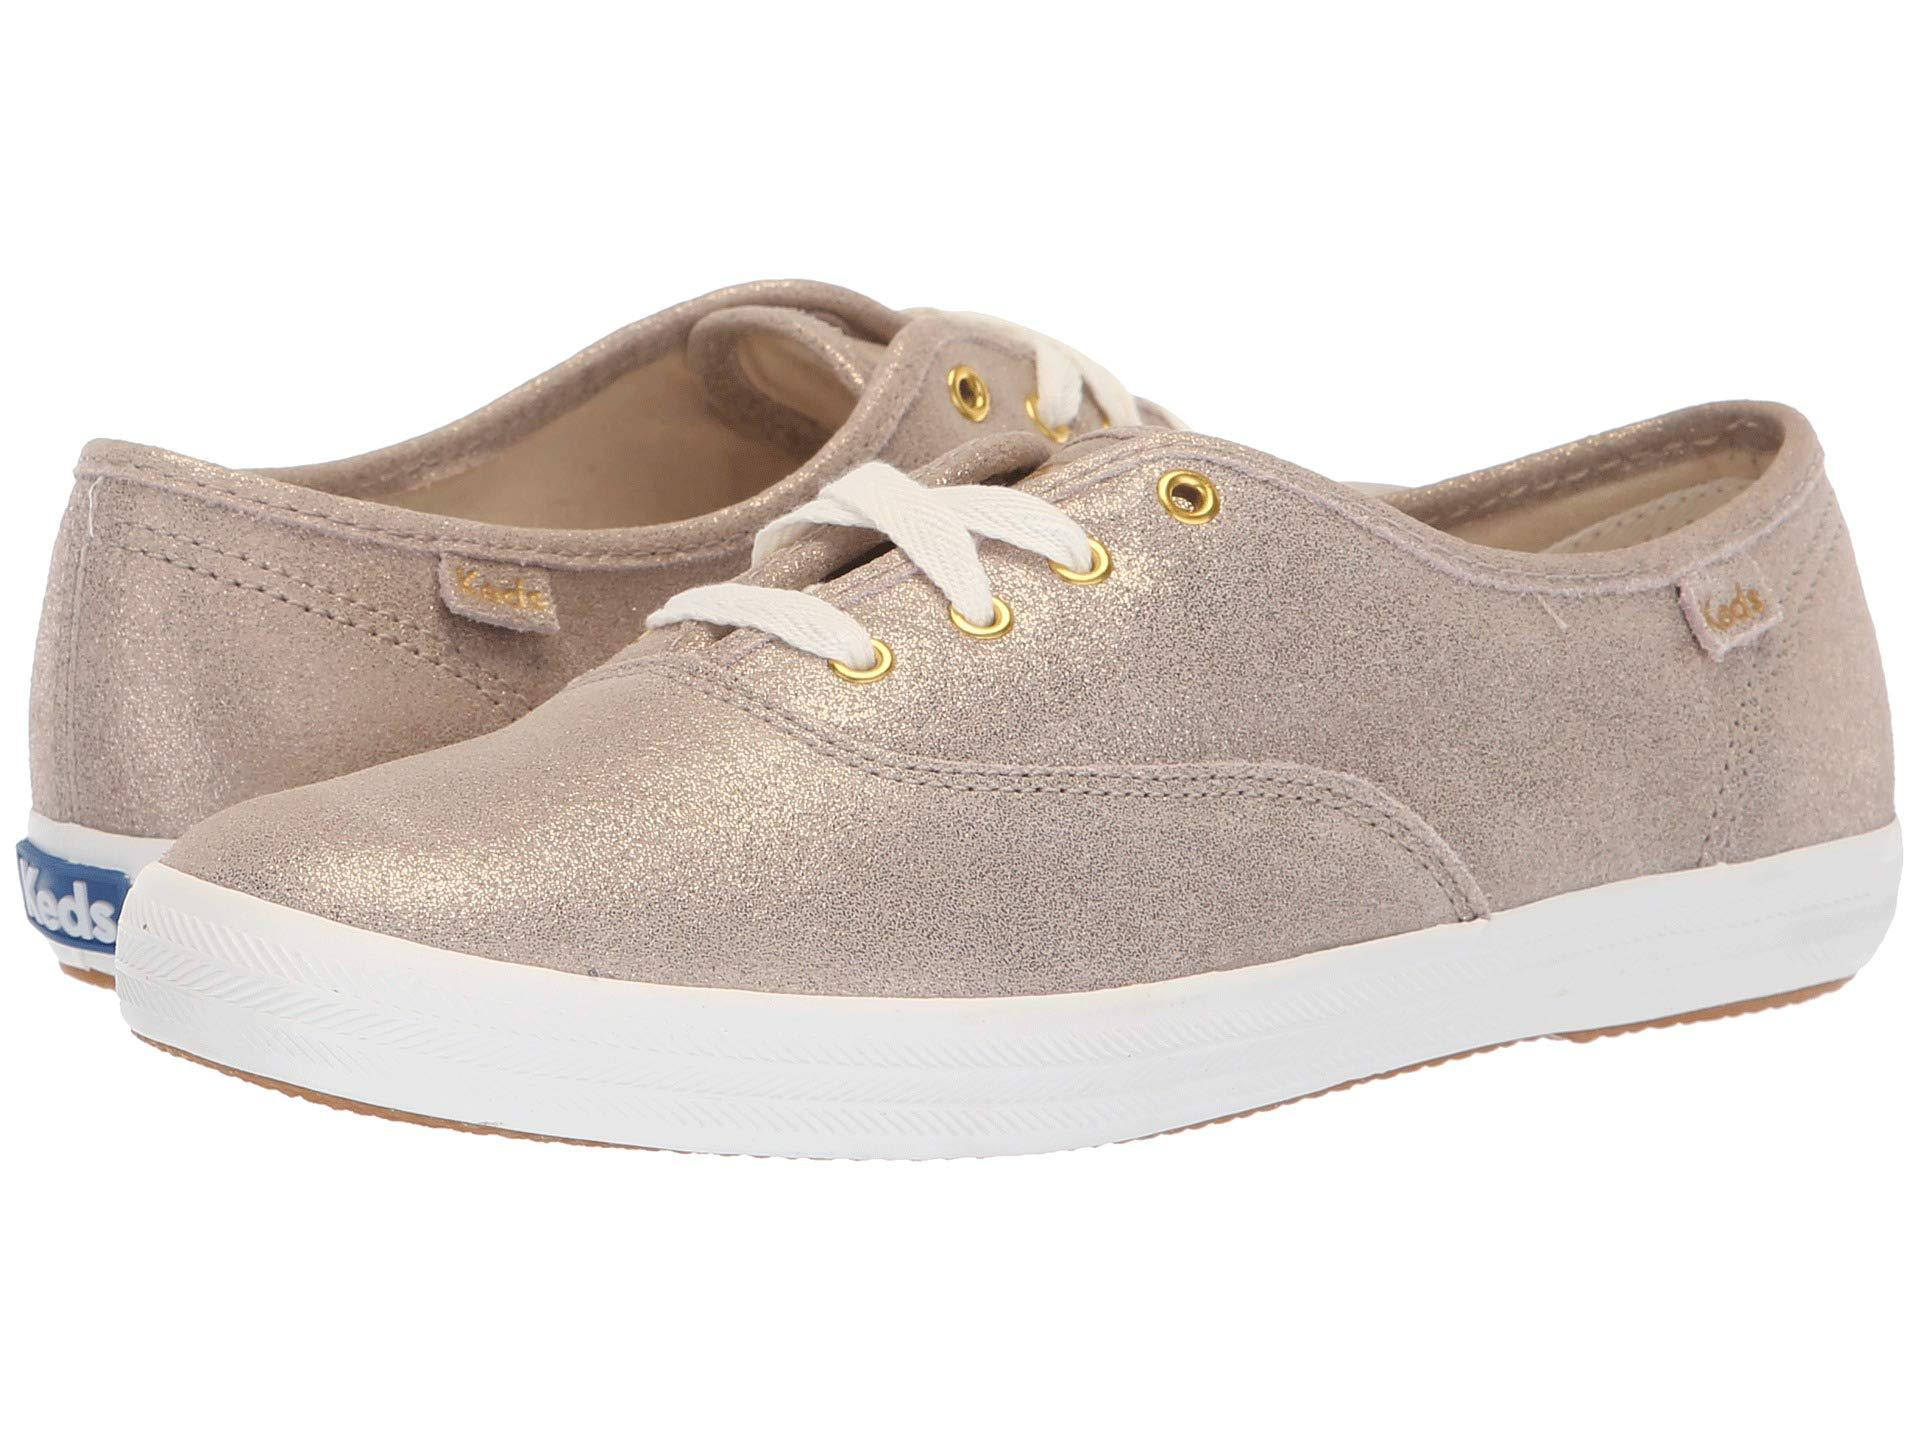 85c4c33e2ecf4 Lyst - Keds Champion Glitter Suede (champagne) Women s Lace Up ...